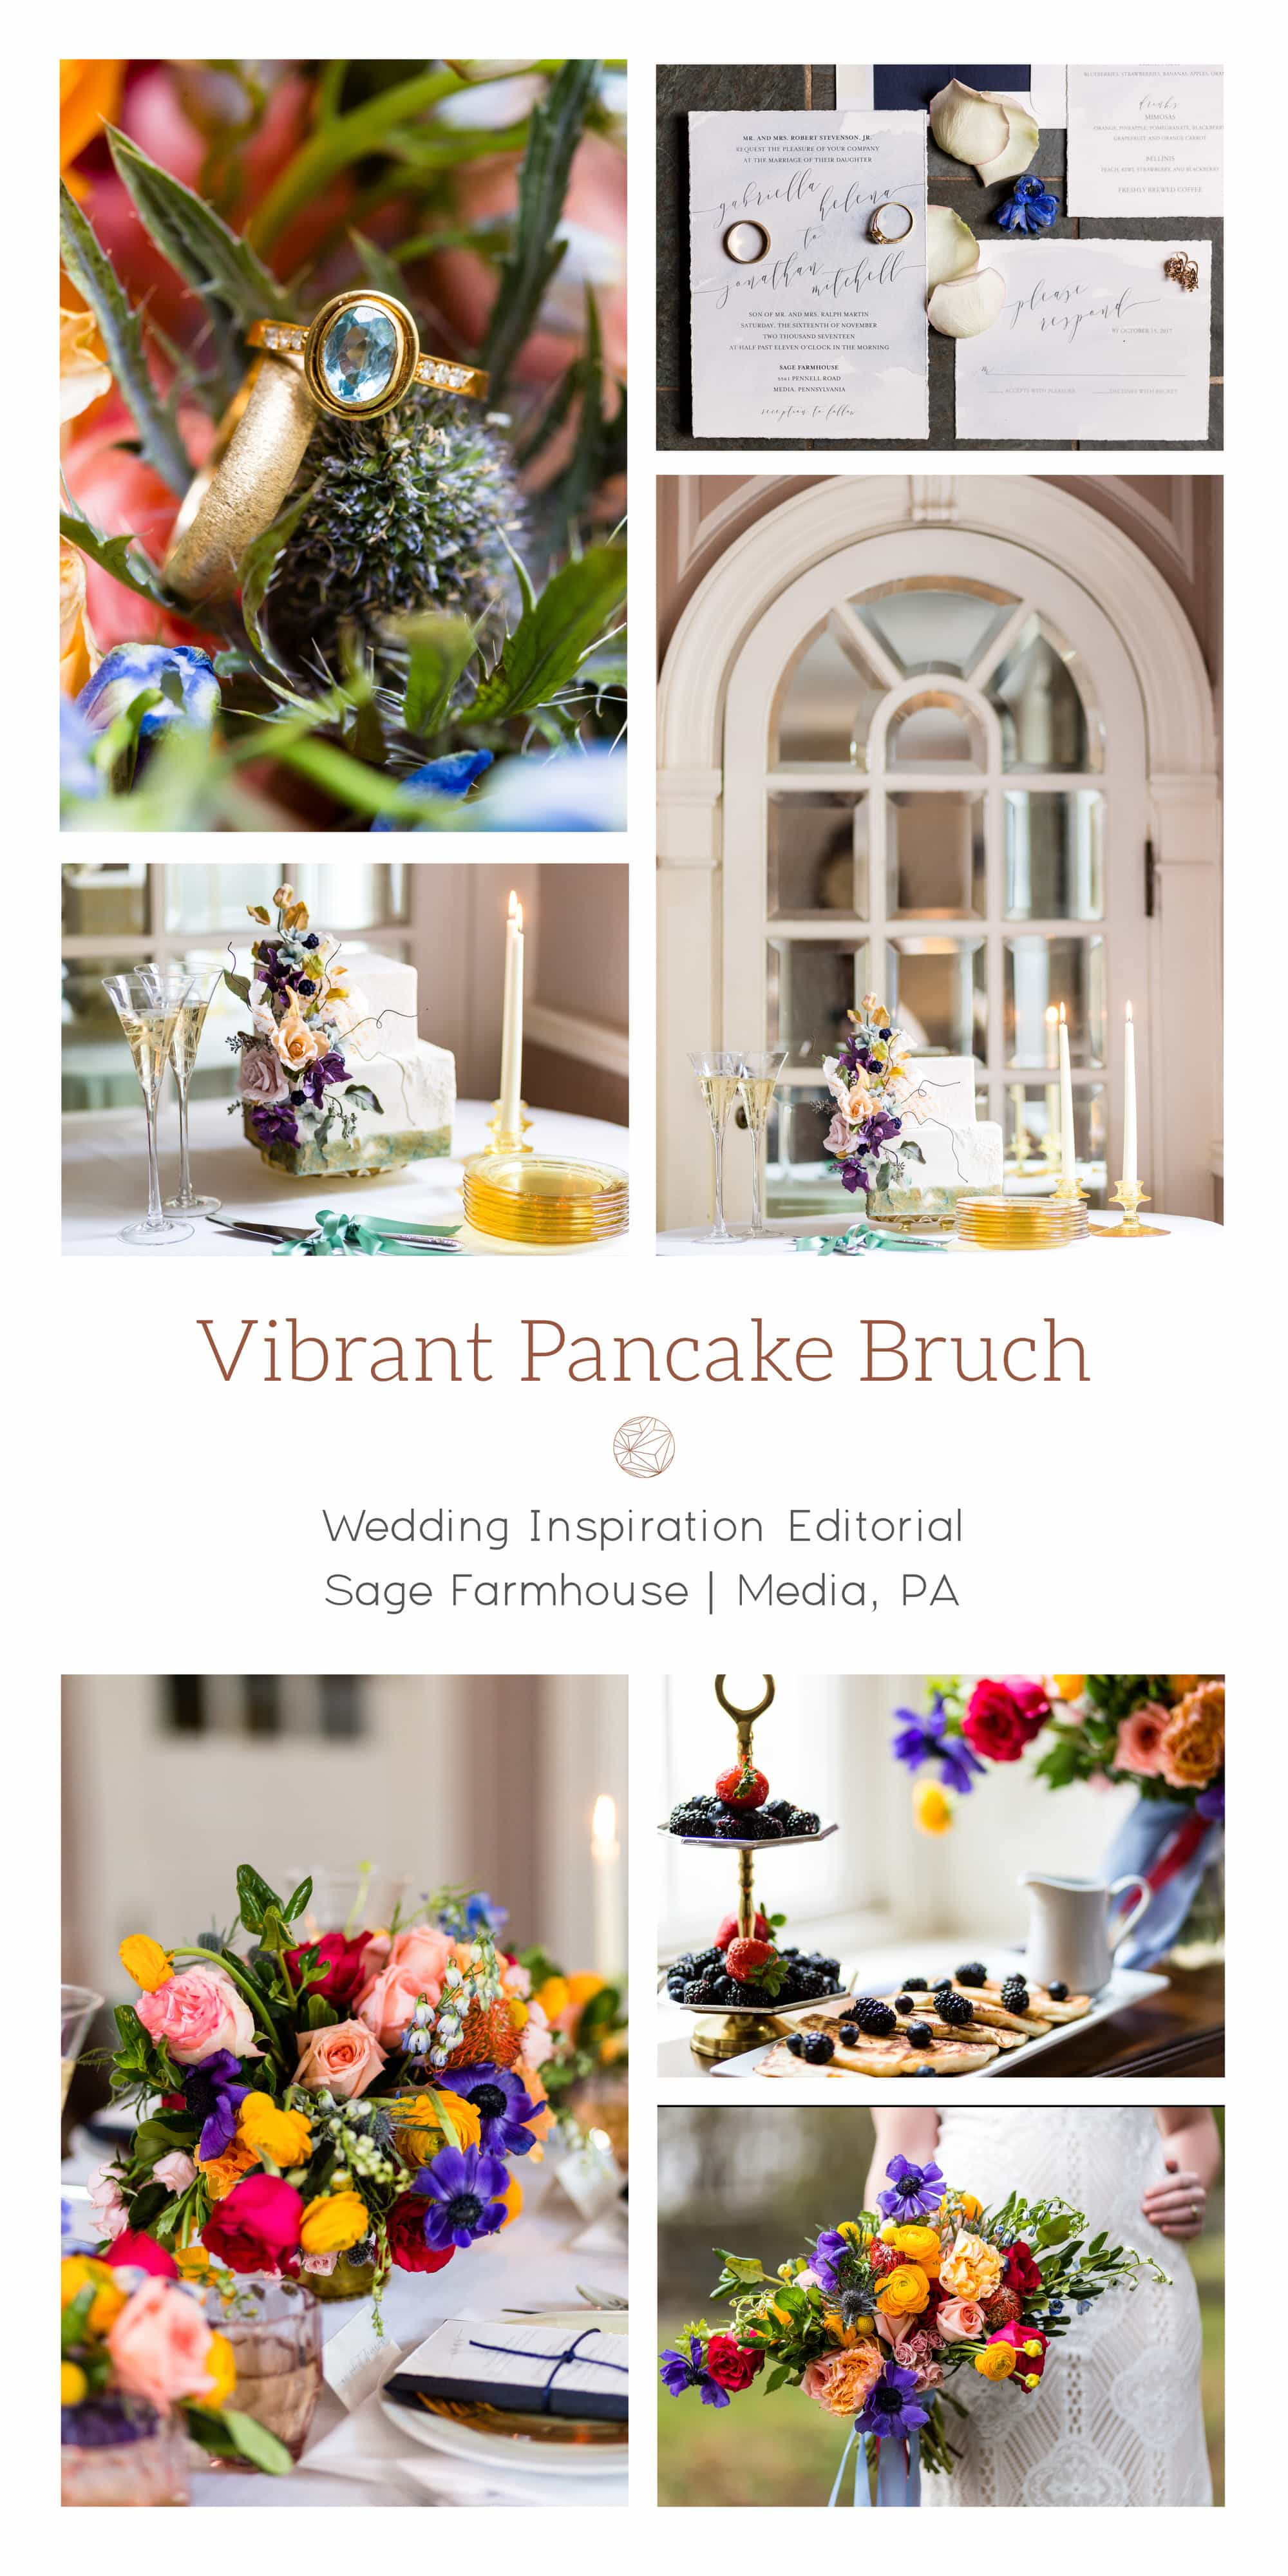 The Sage Farmhouse: A Colorful Brunch Wedding Inspiration Shoot